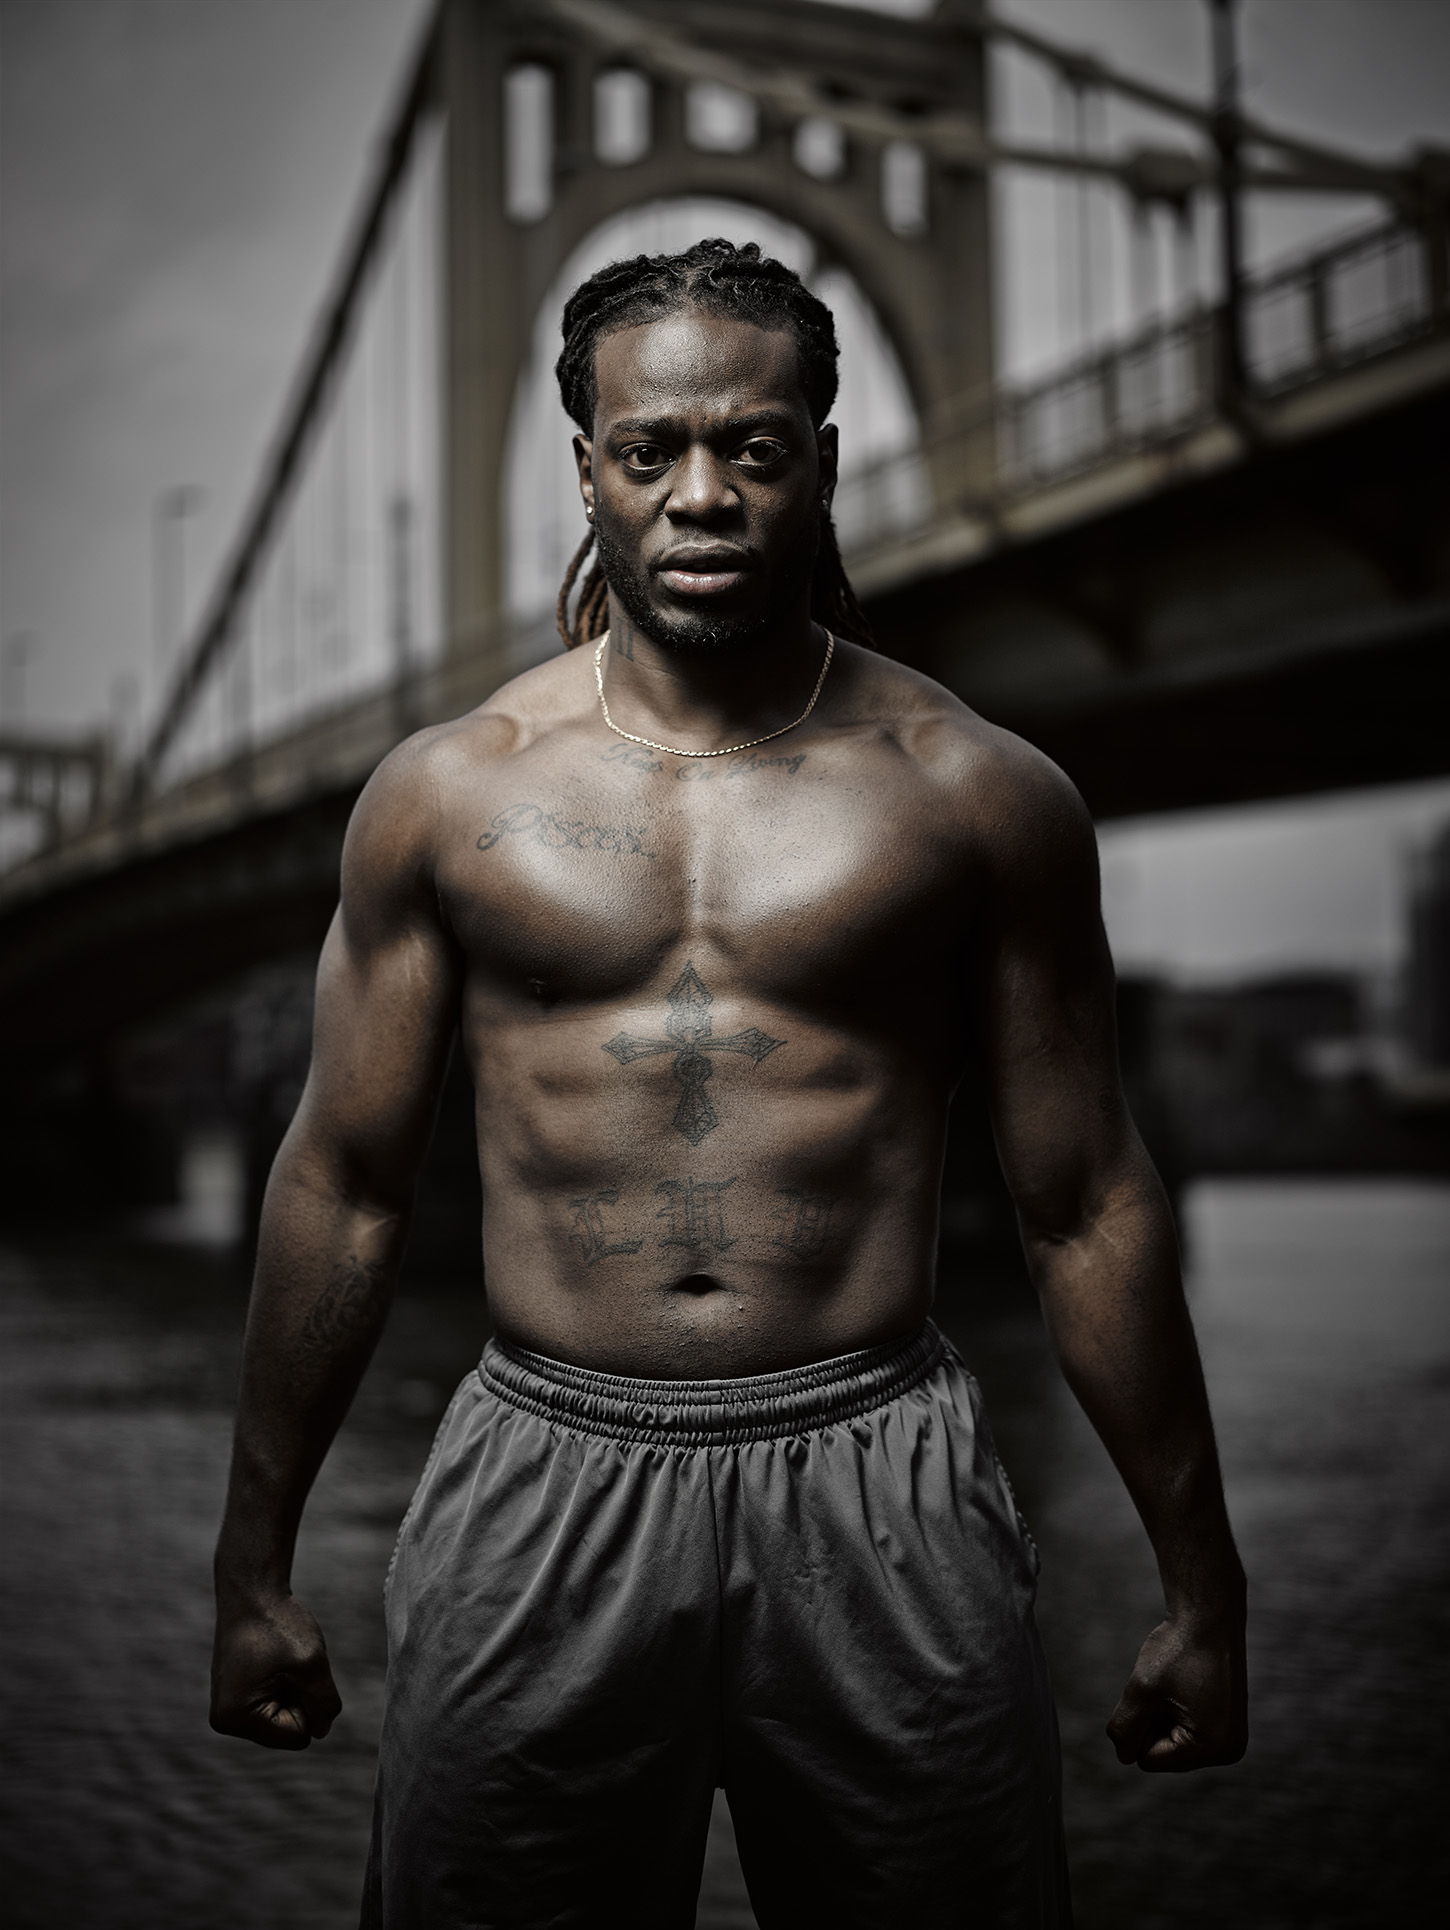 Outdoor fitness lifestyle photography in an urban setting by Travis Neely Photography